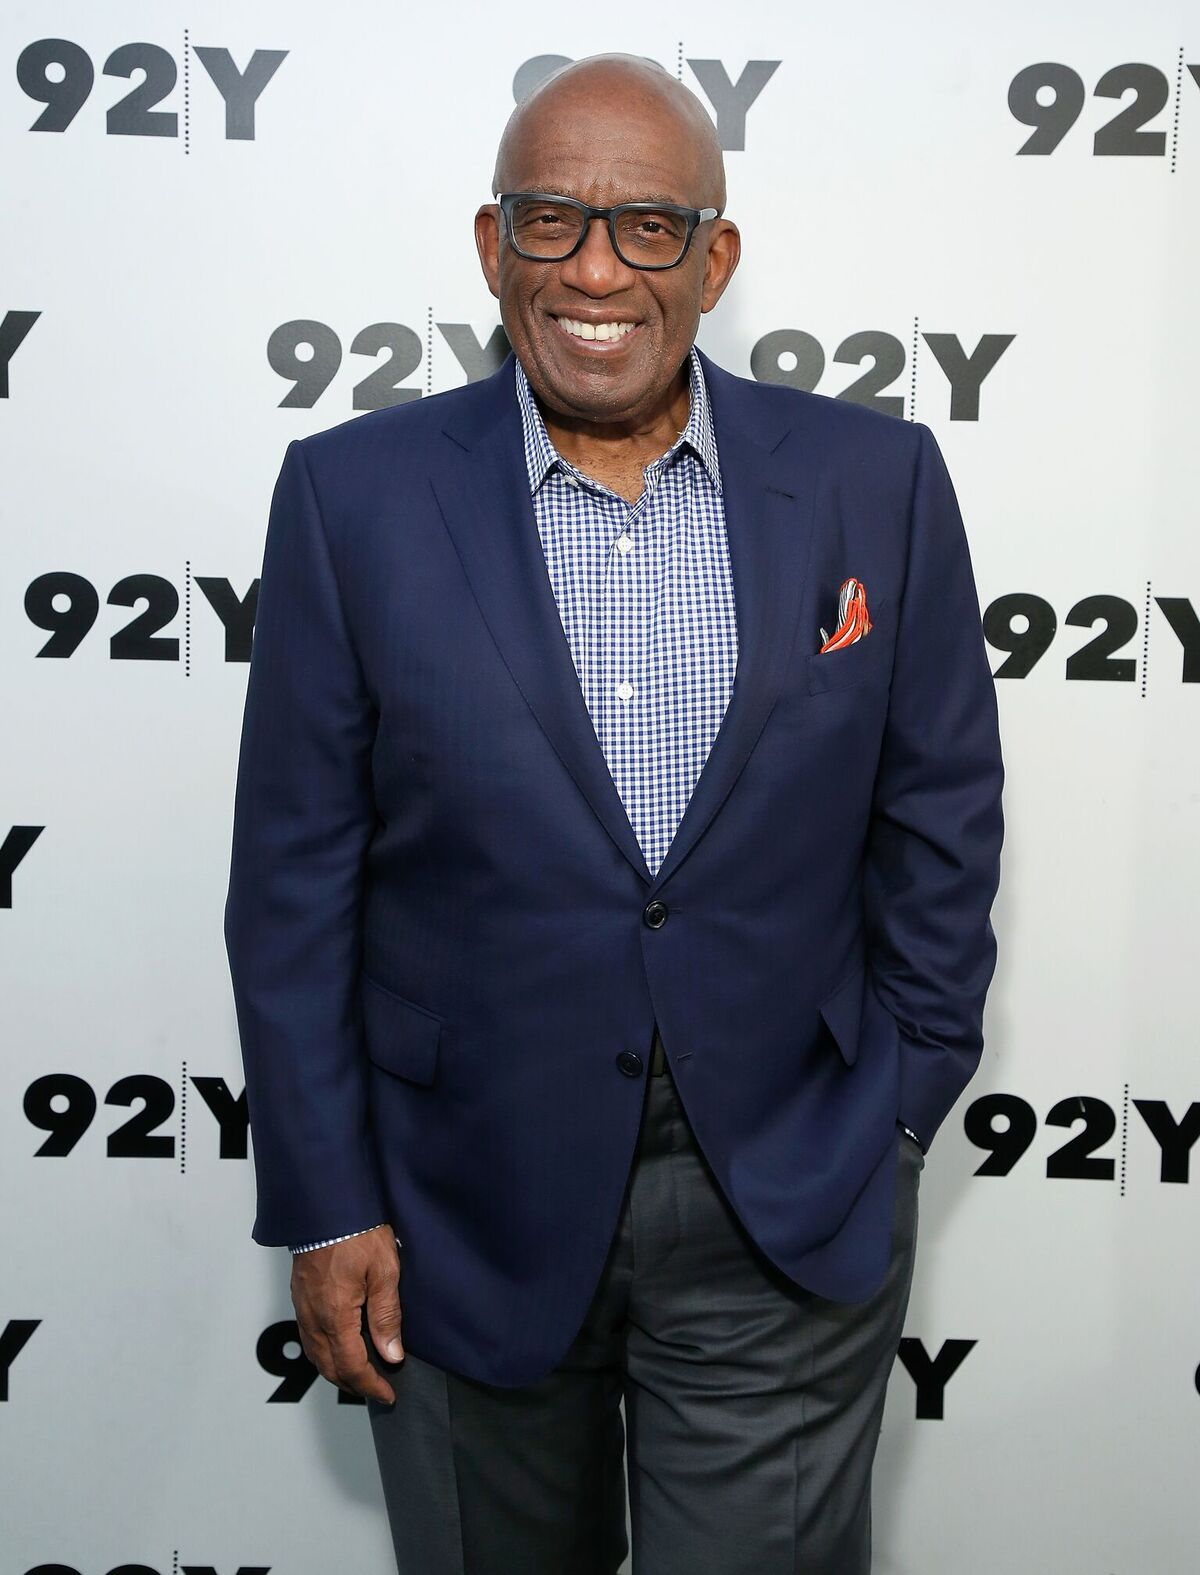 Al Roker attends the Natalie Morales in conversation with Al Roker event at 92nd Street Y on April 16, 2018 | Photo: Getty Images